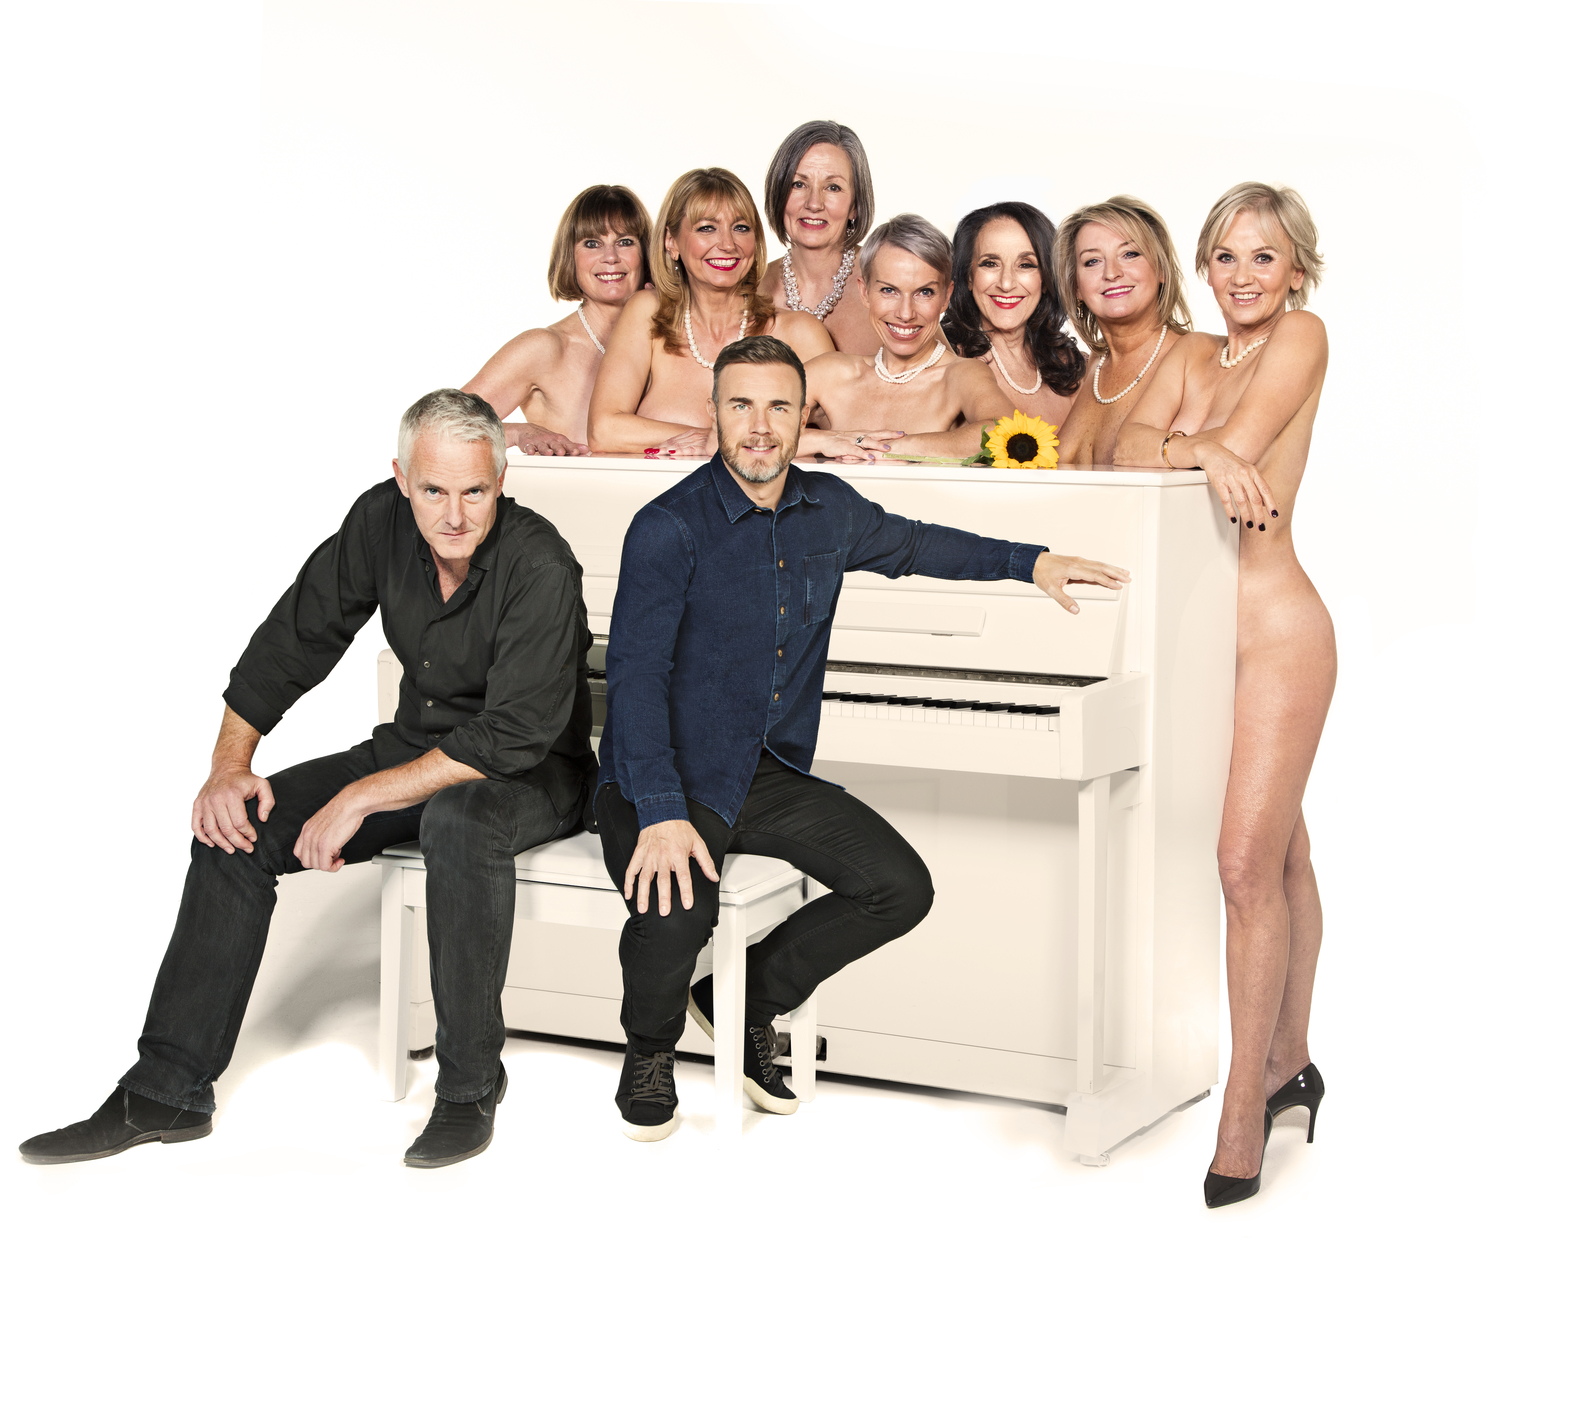 Calendar Girls The Musical review